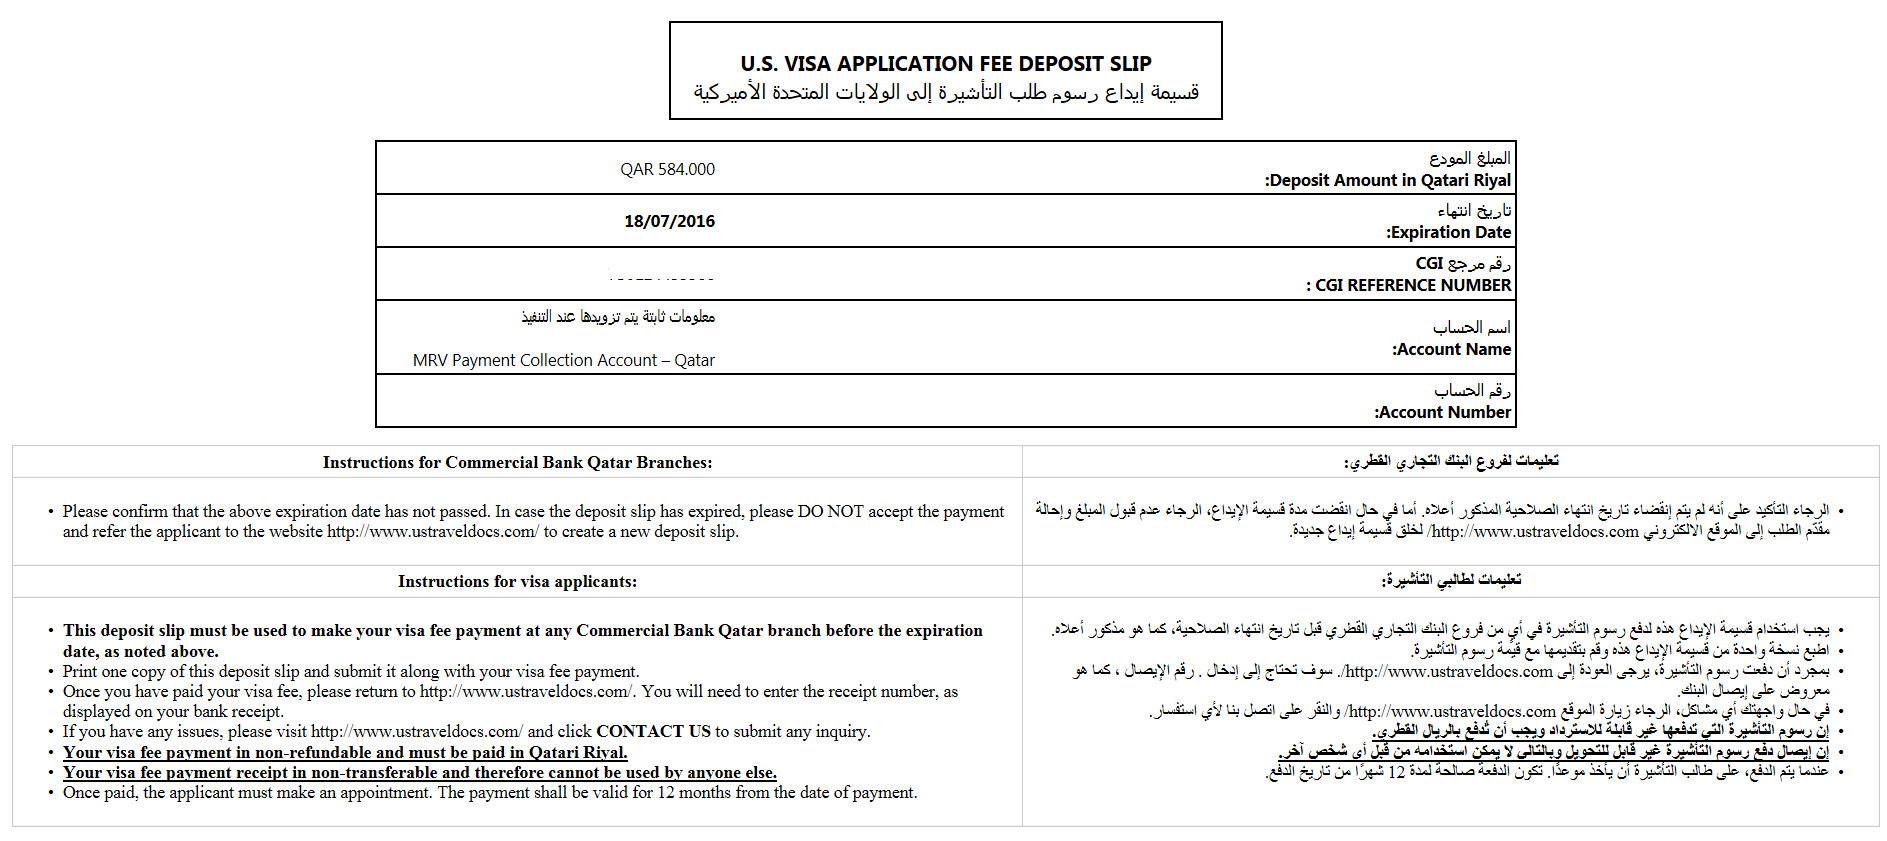 Guide to getting a usa tourist visa in qatar you will need the receipt number on the bank receipt to schedule your visa appointment altavistaventures